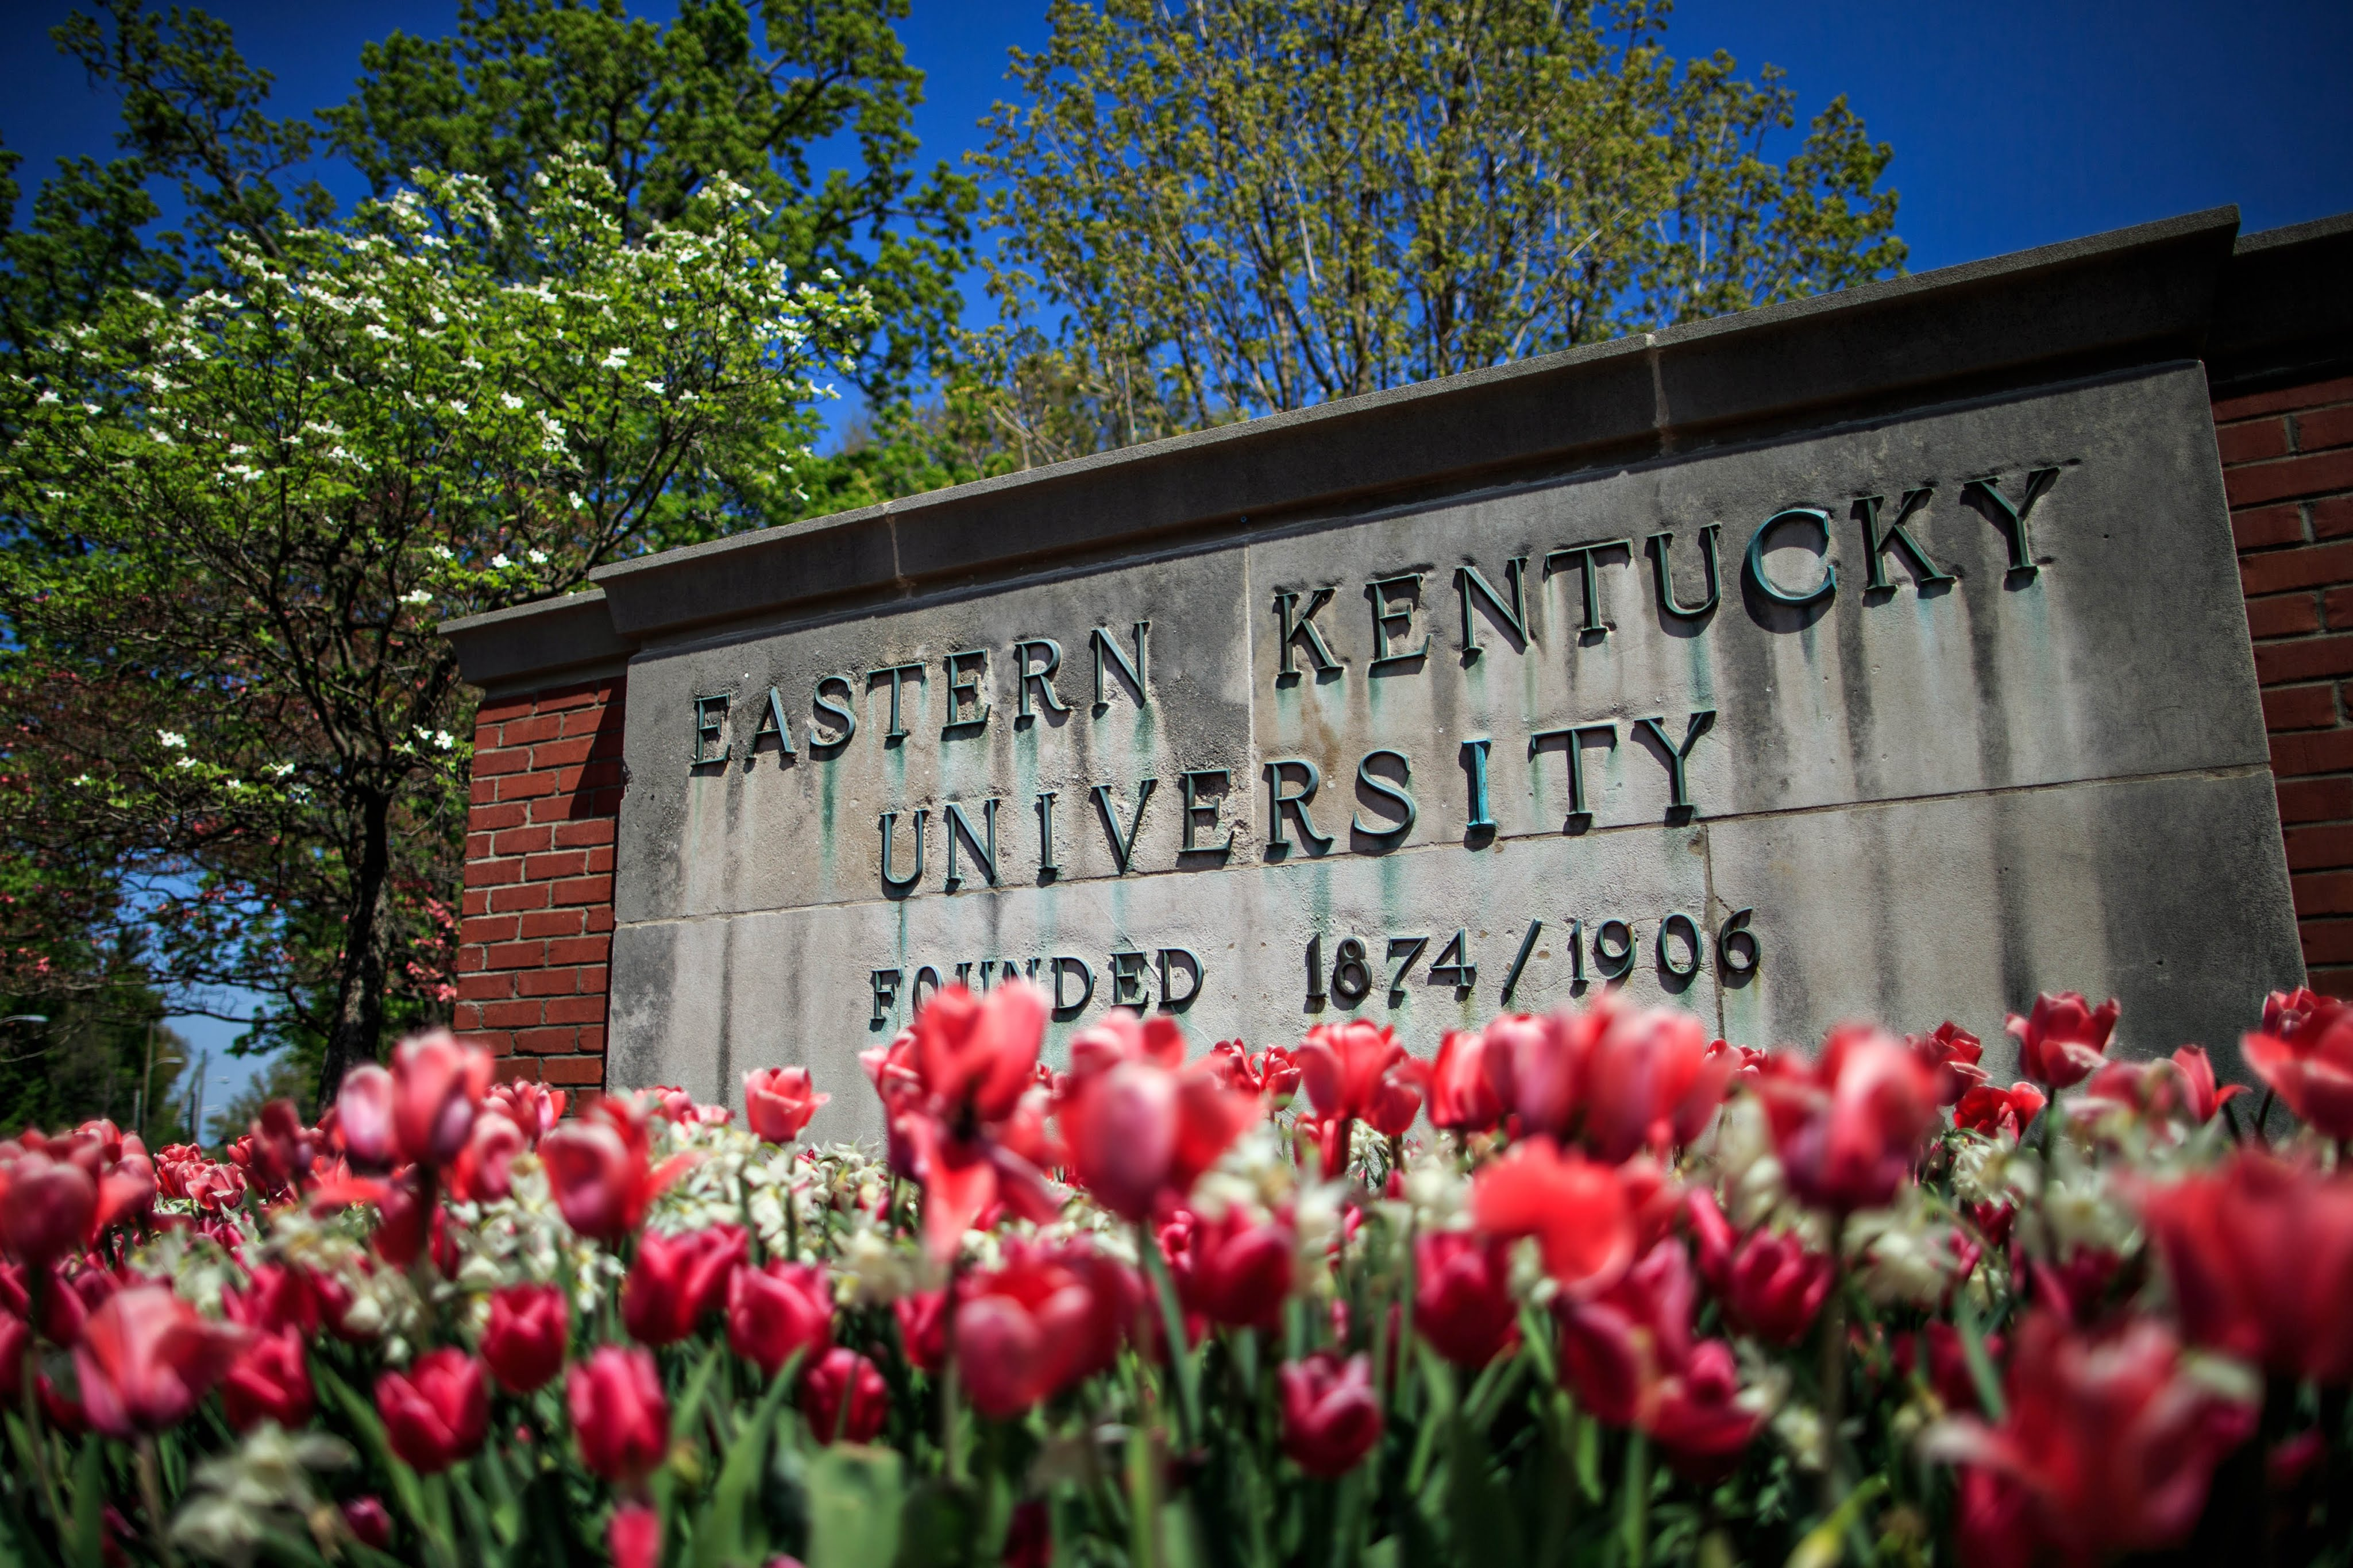 The main entrance sign of EKU